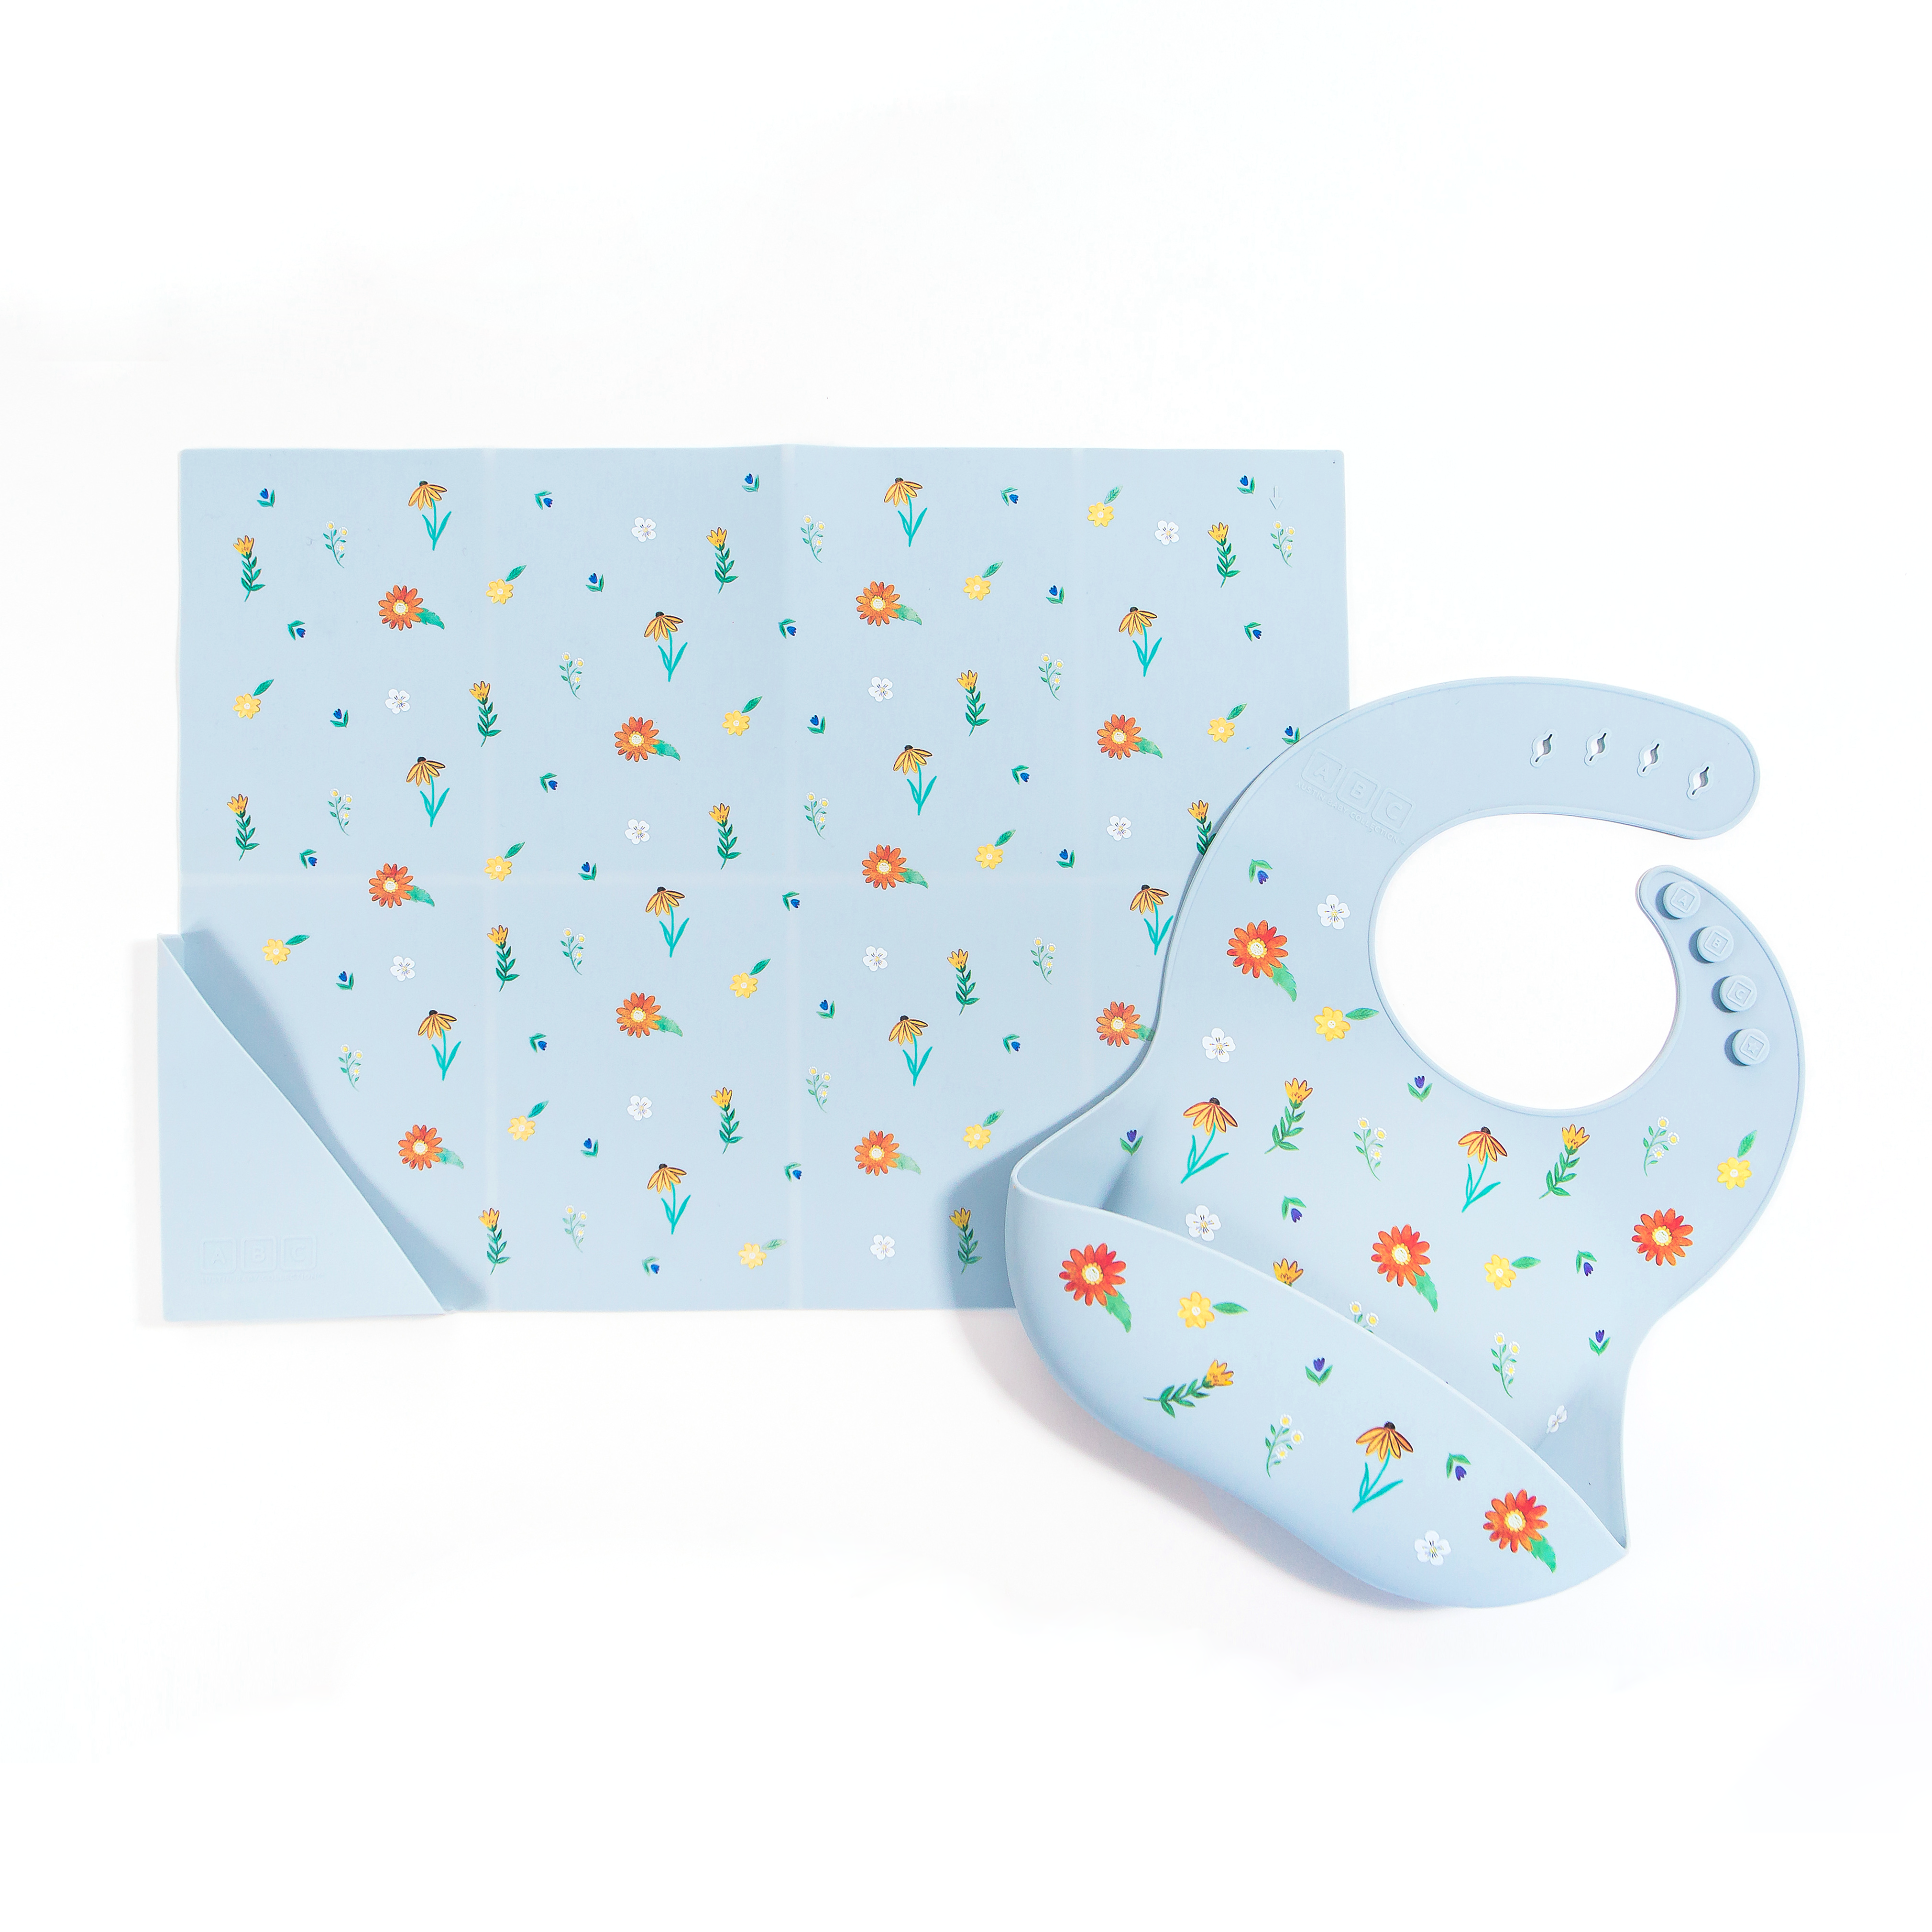 Silicone Placemat Wildflower Chambray Blue